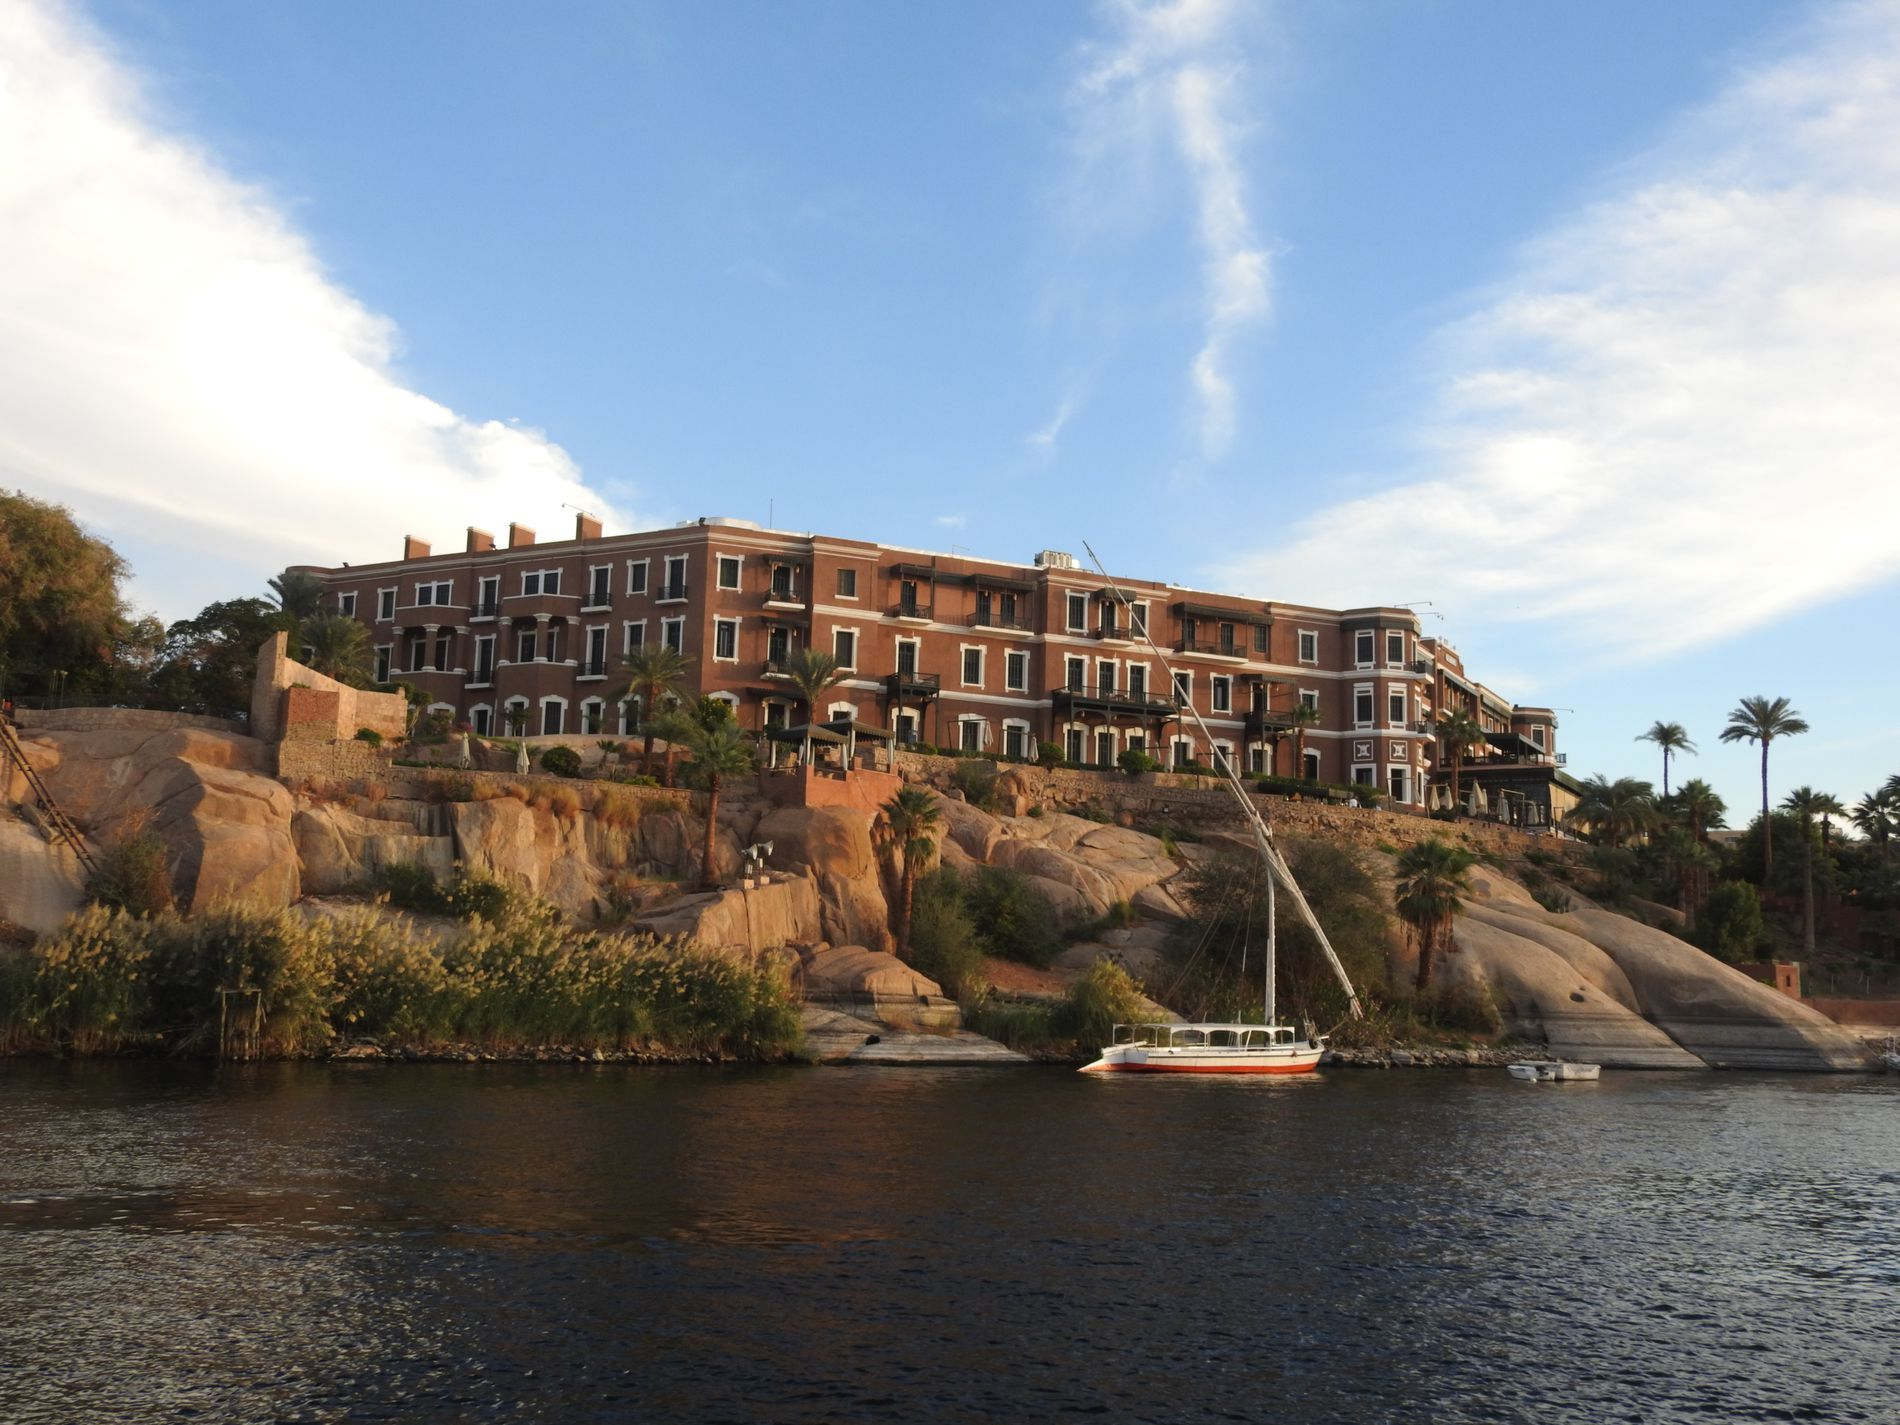 Hotel Sofitel Legend Old Cataract Aswan By Mohamed Abousena